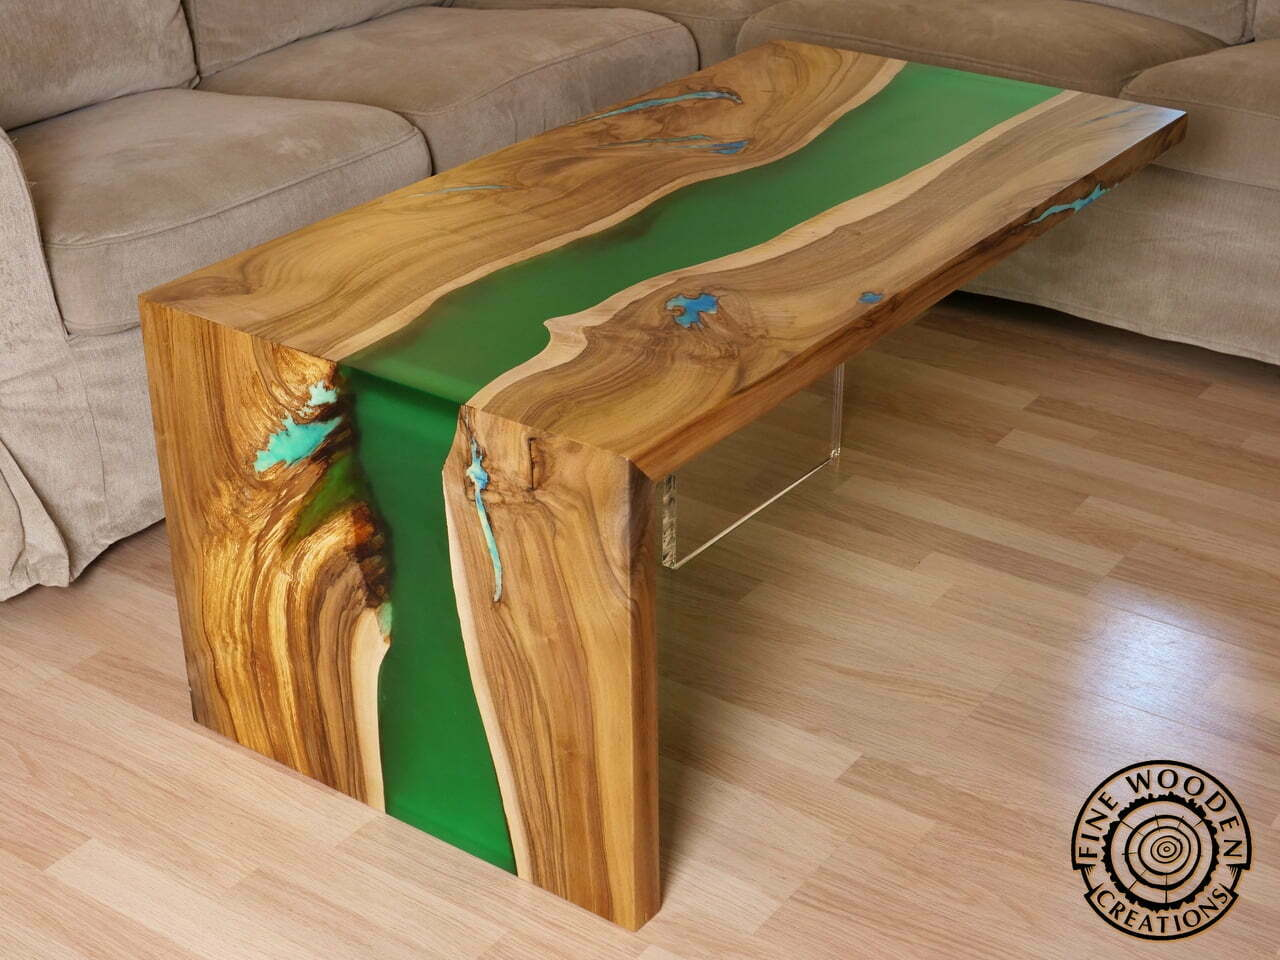 Waterfall Table Made Of Walnut With Green River Like Resin Part Flowing Through The Top And Falling Down Along One Legs